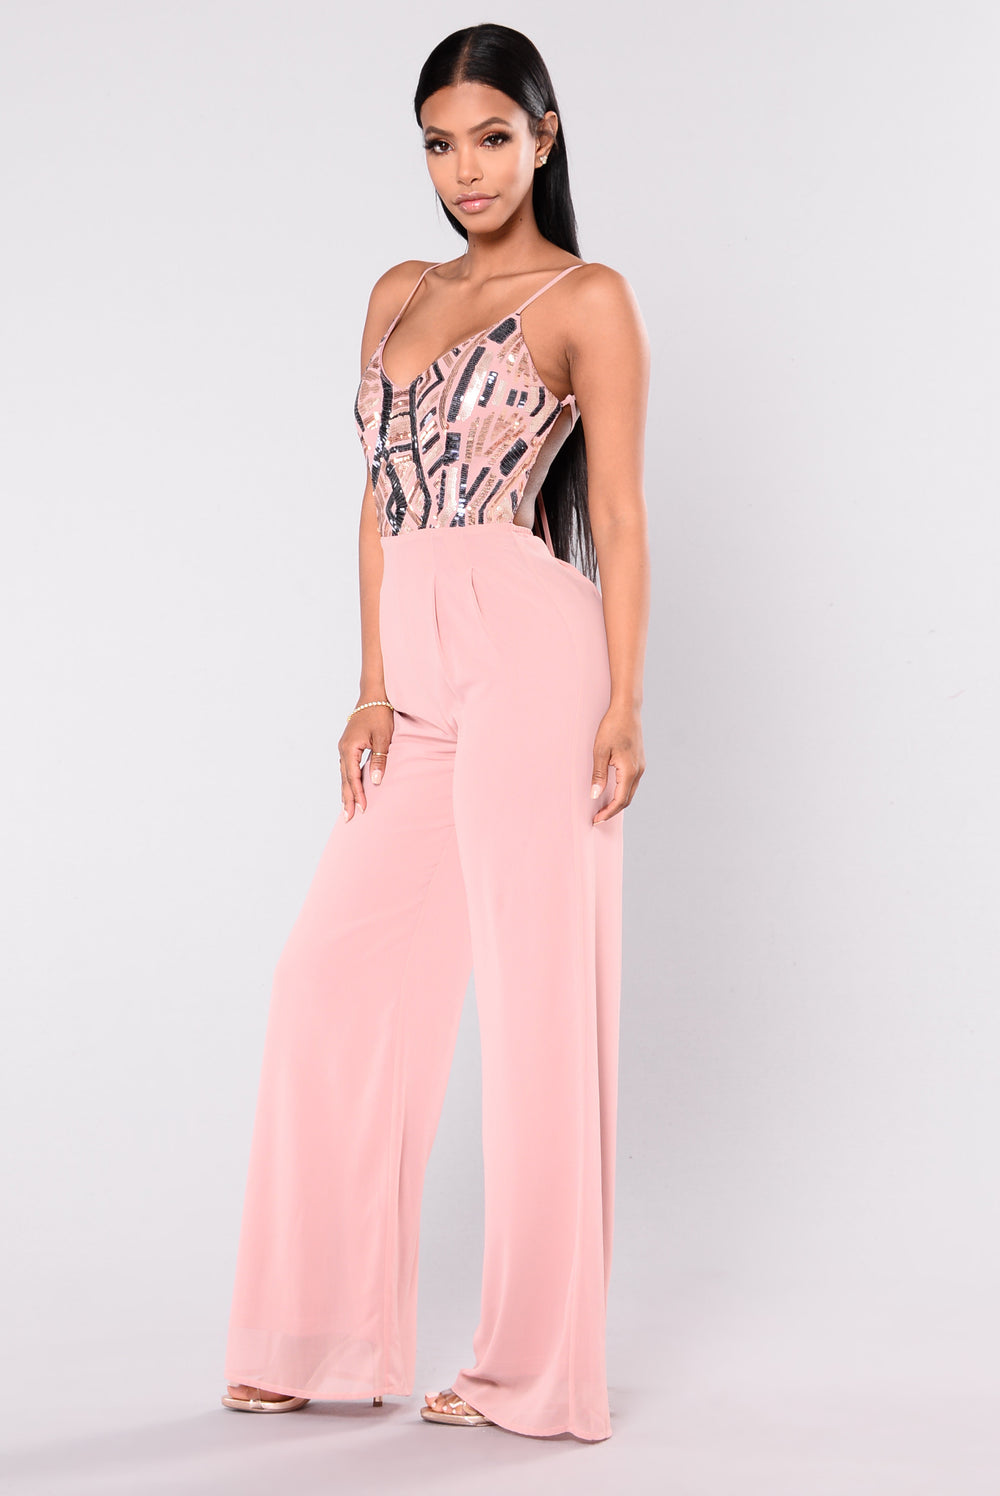 Fashionably Late Sequin Jumpsuit - Pink